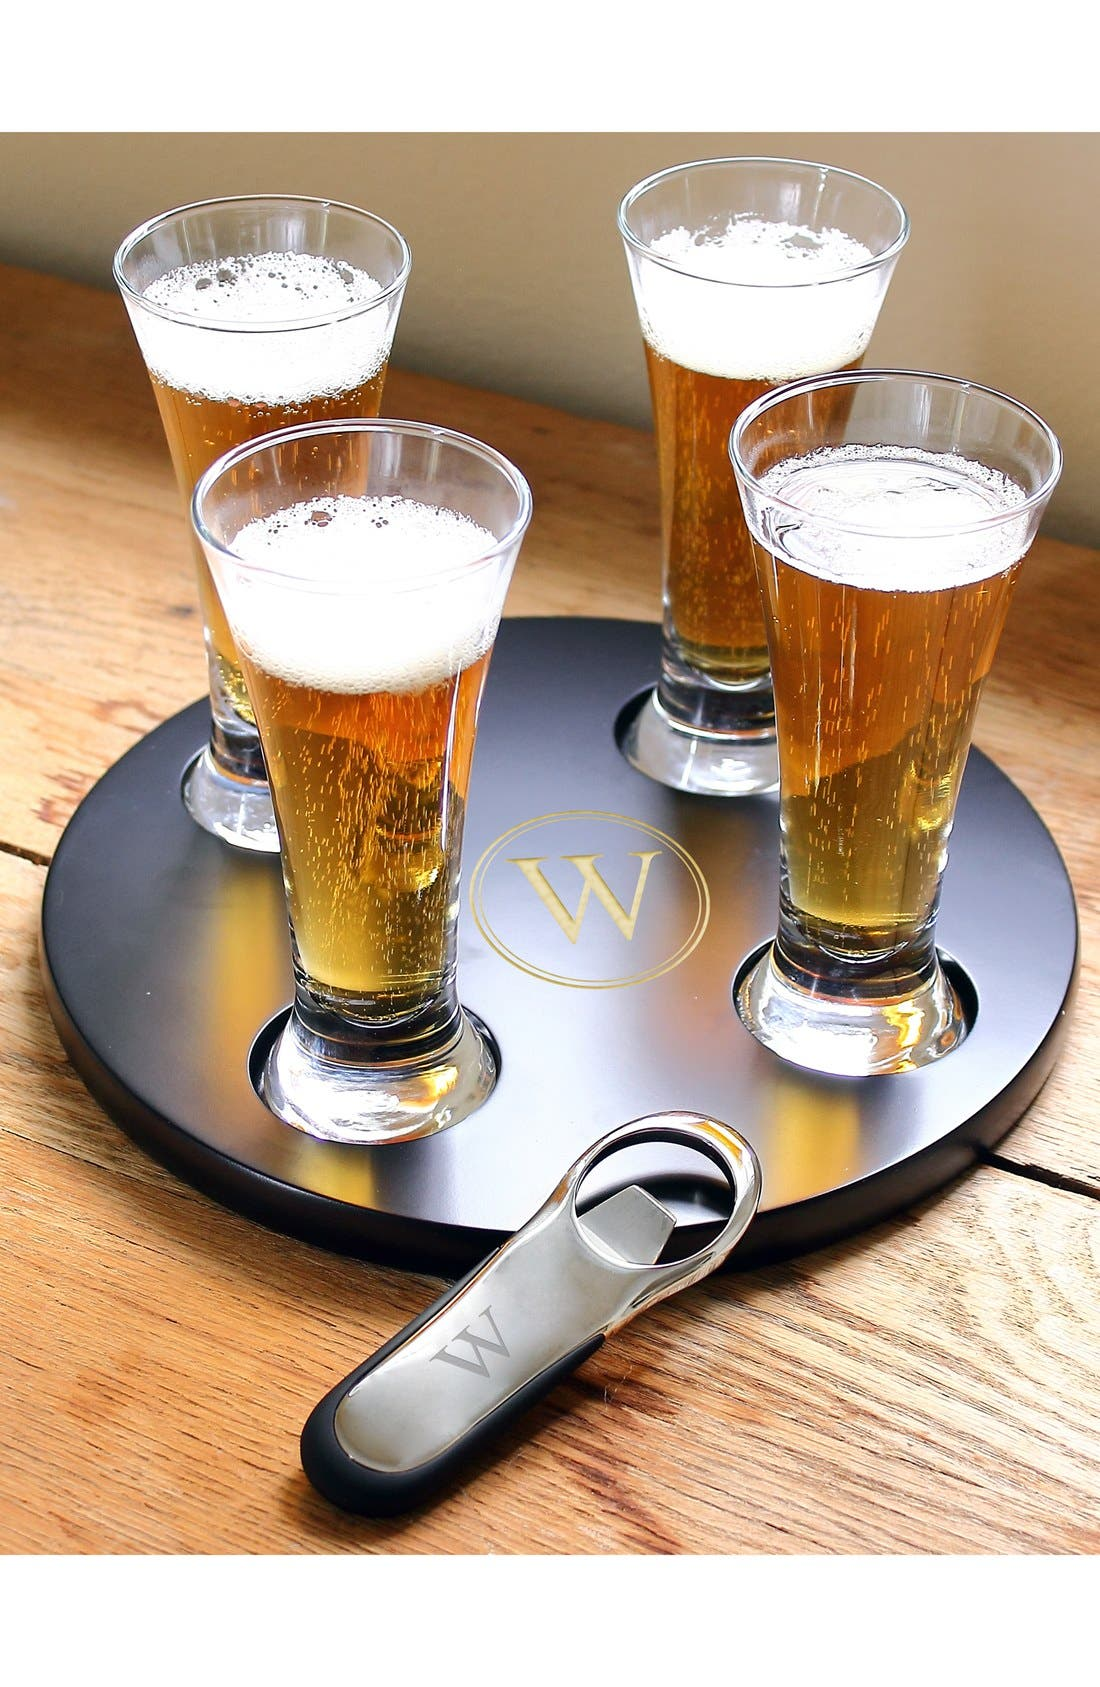 Main Image - Cathy's Concepts Personalized Beer Flight Sampler Set (Set of 6)